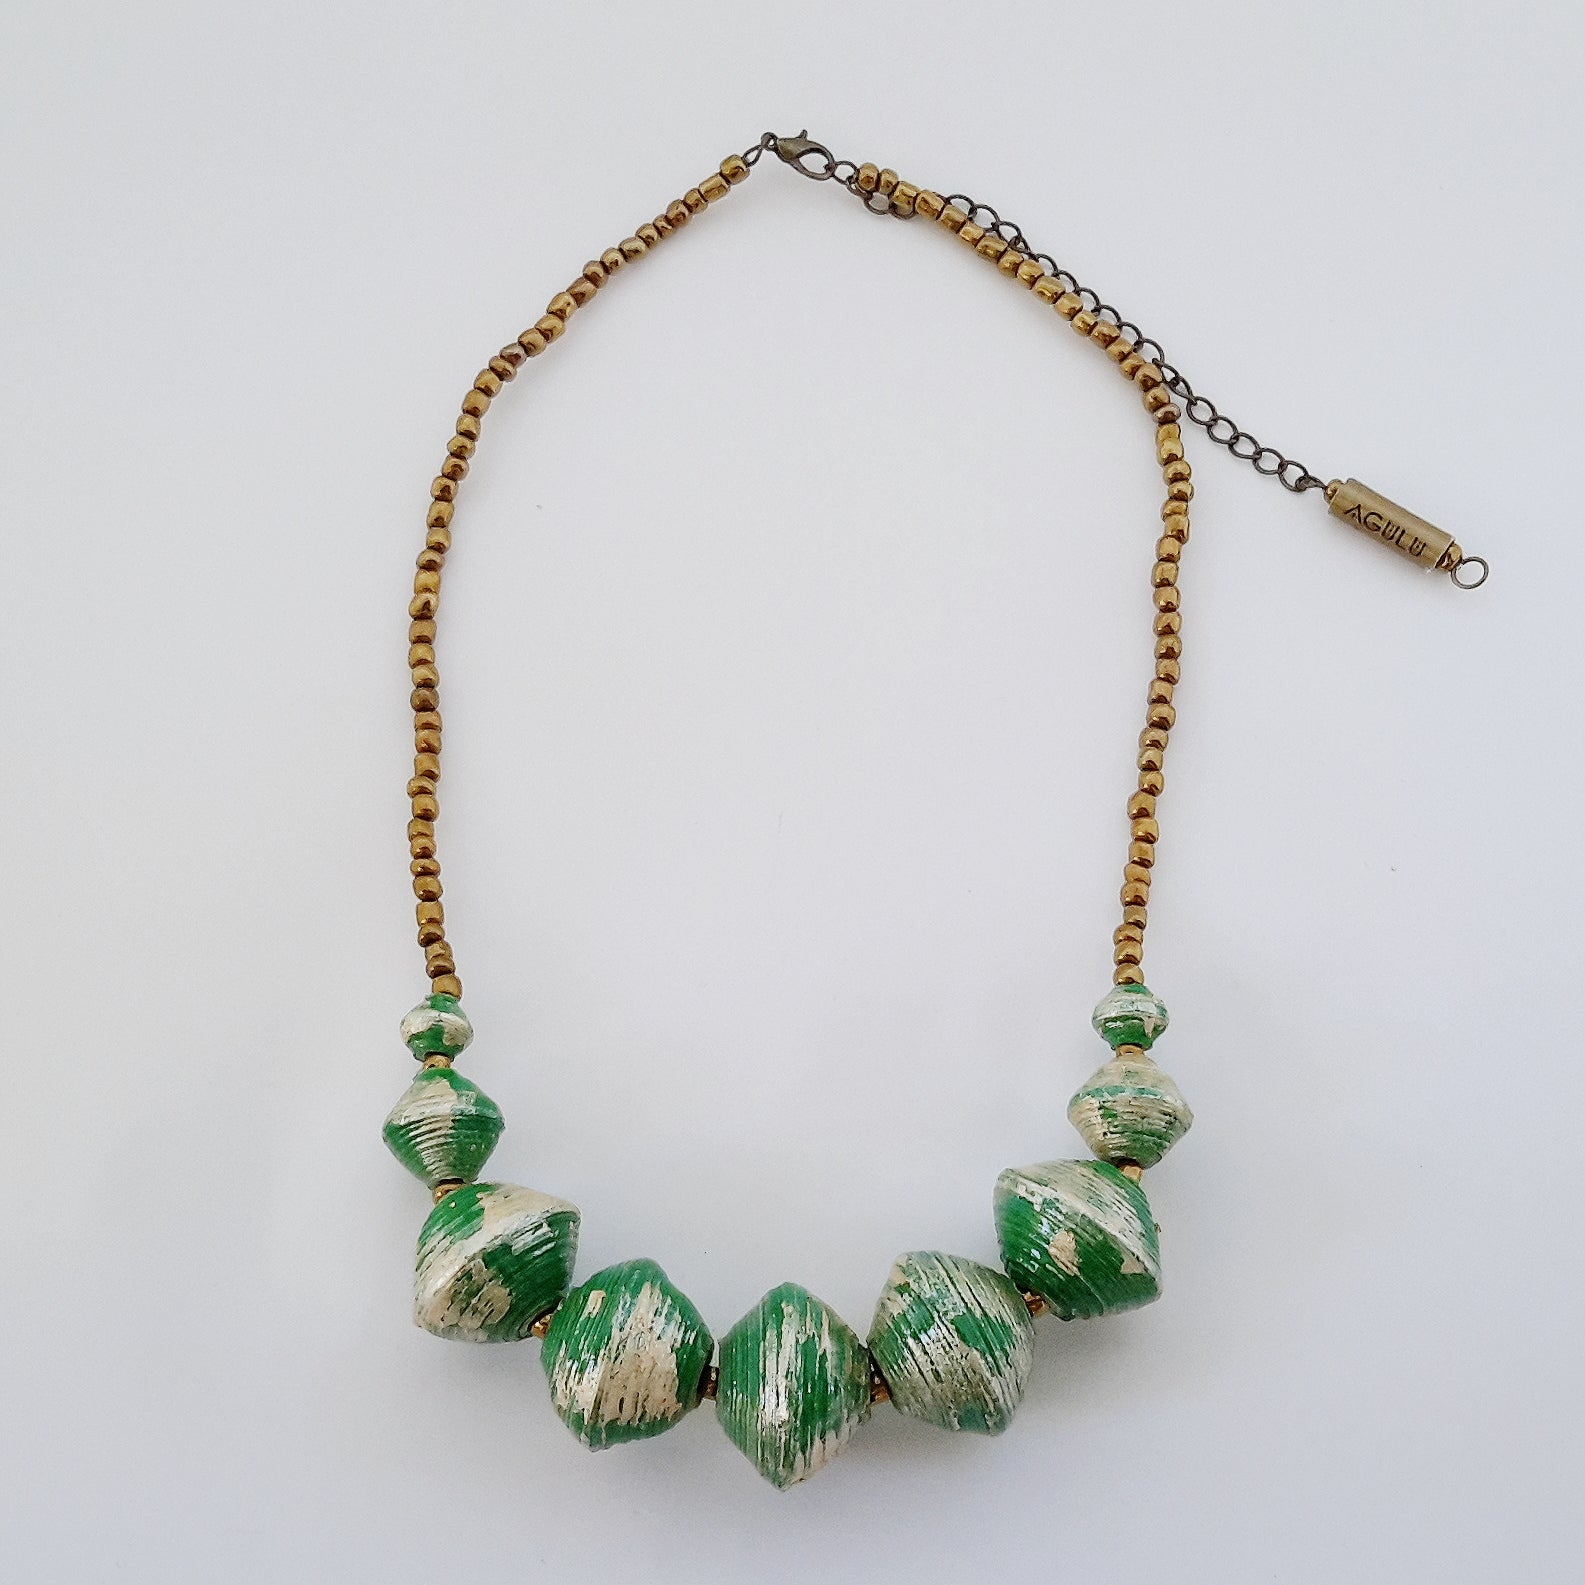 Green hand made ethical design paper bead necklace made out of recycled paper in Uganda by principles of fair trade, ethical and sustainable fashion, empowering women of post war area, by Finnish / Scandinavian brand, Agulu Paper Beads. Eettinen vihreä käsintehty design kaulakoru, joka on tehty kierrätyspaperista reilun kaupan periaattein työllistämällä kehitysmaan nasia.